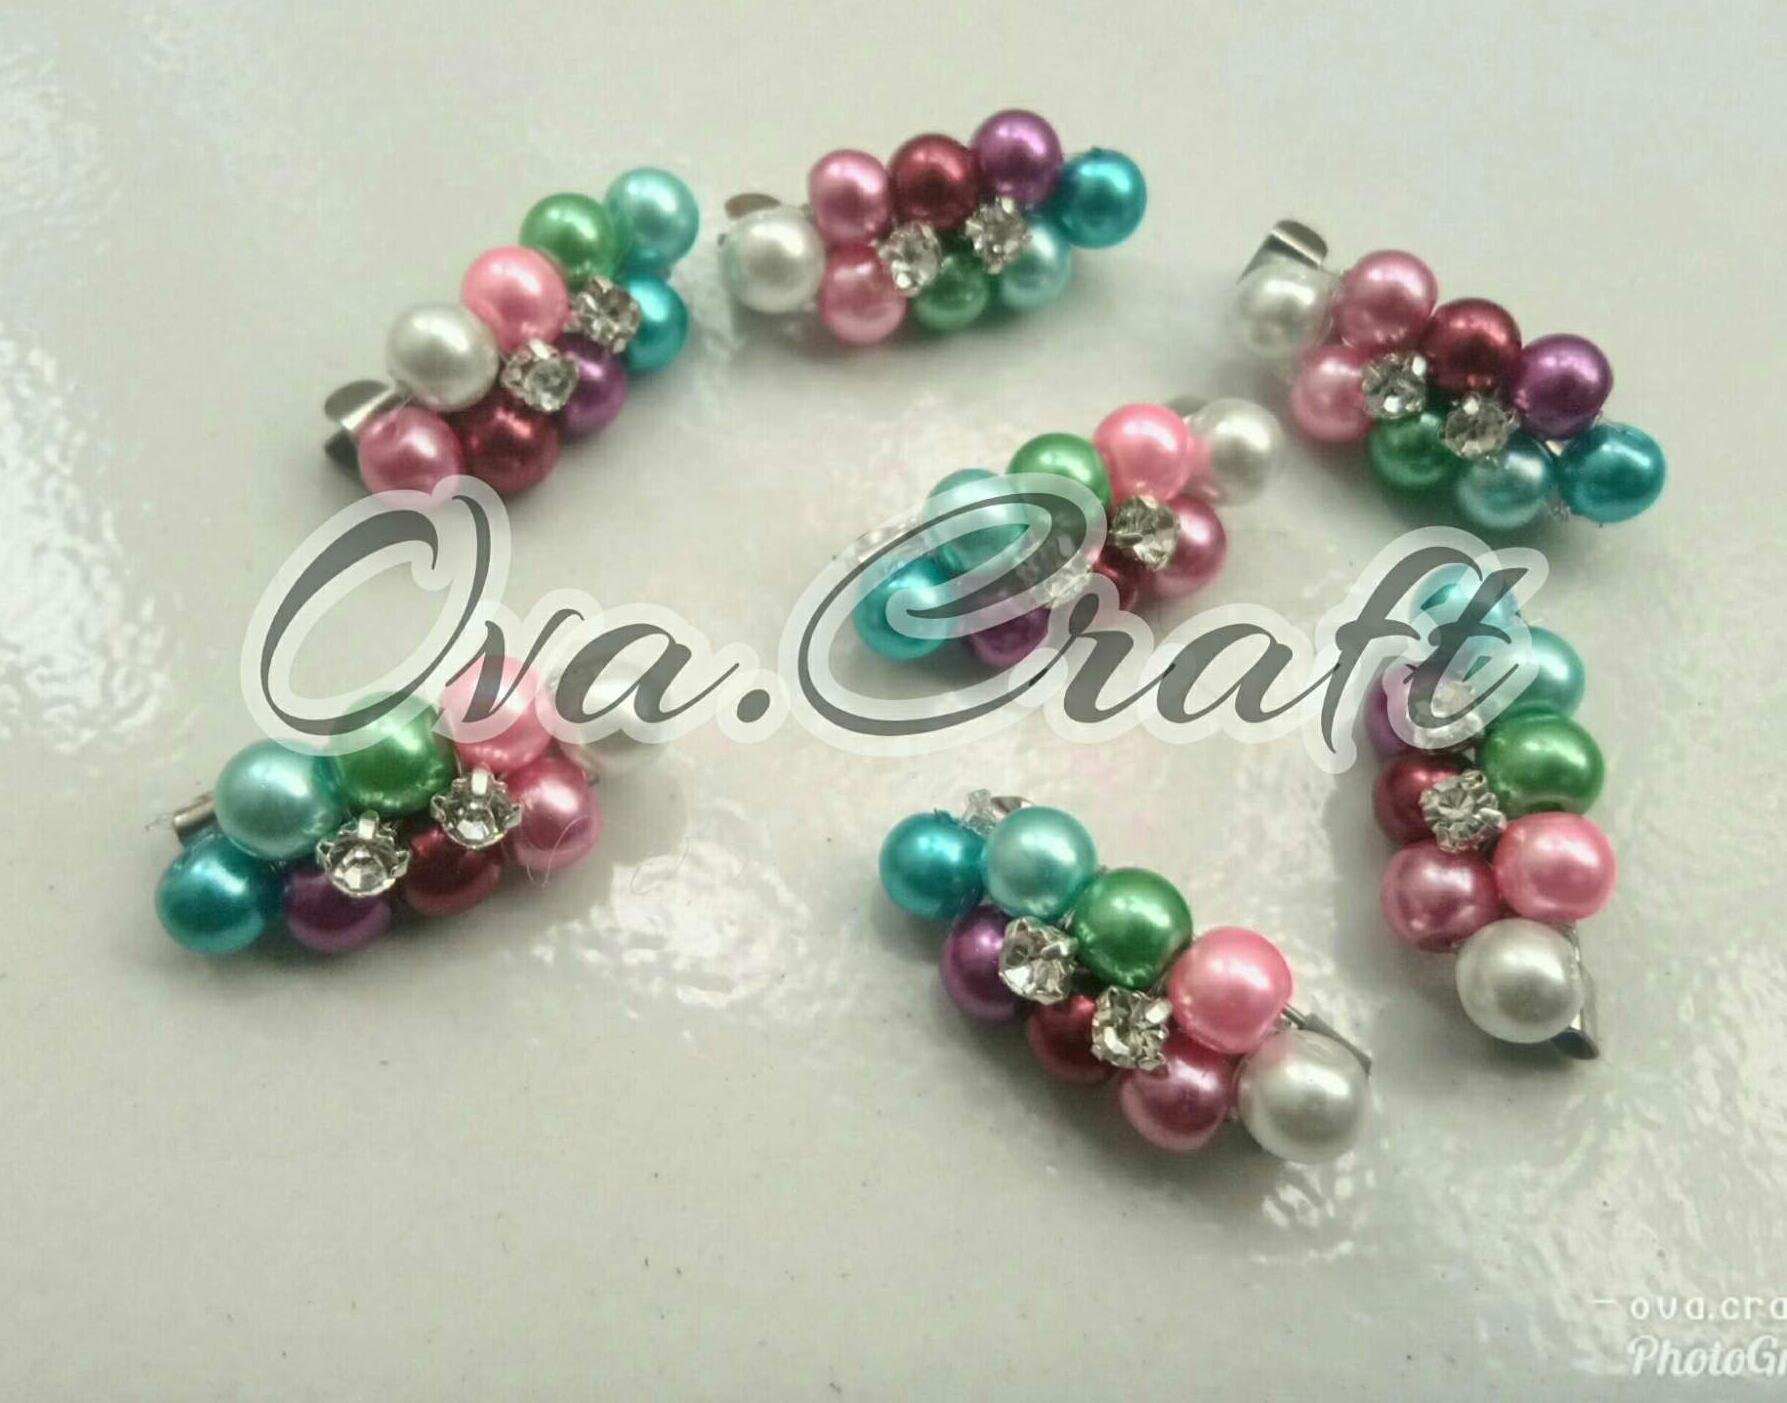 Bros Mutiara Dua Diamond Campur Warna Paket 10pcs By Ova.craft.